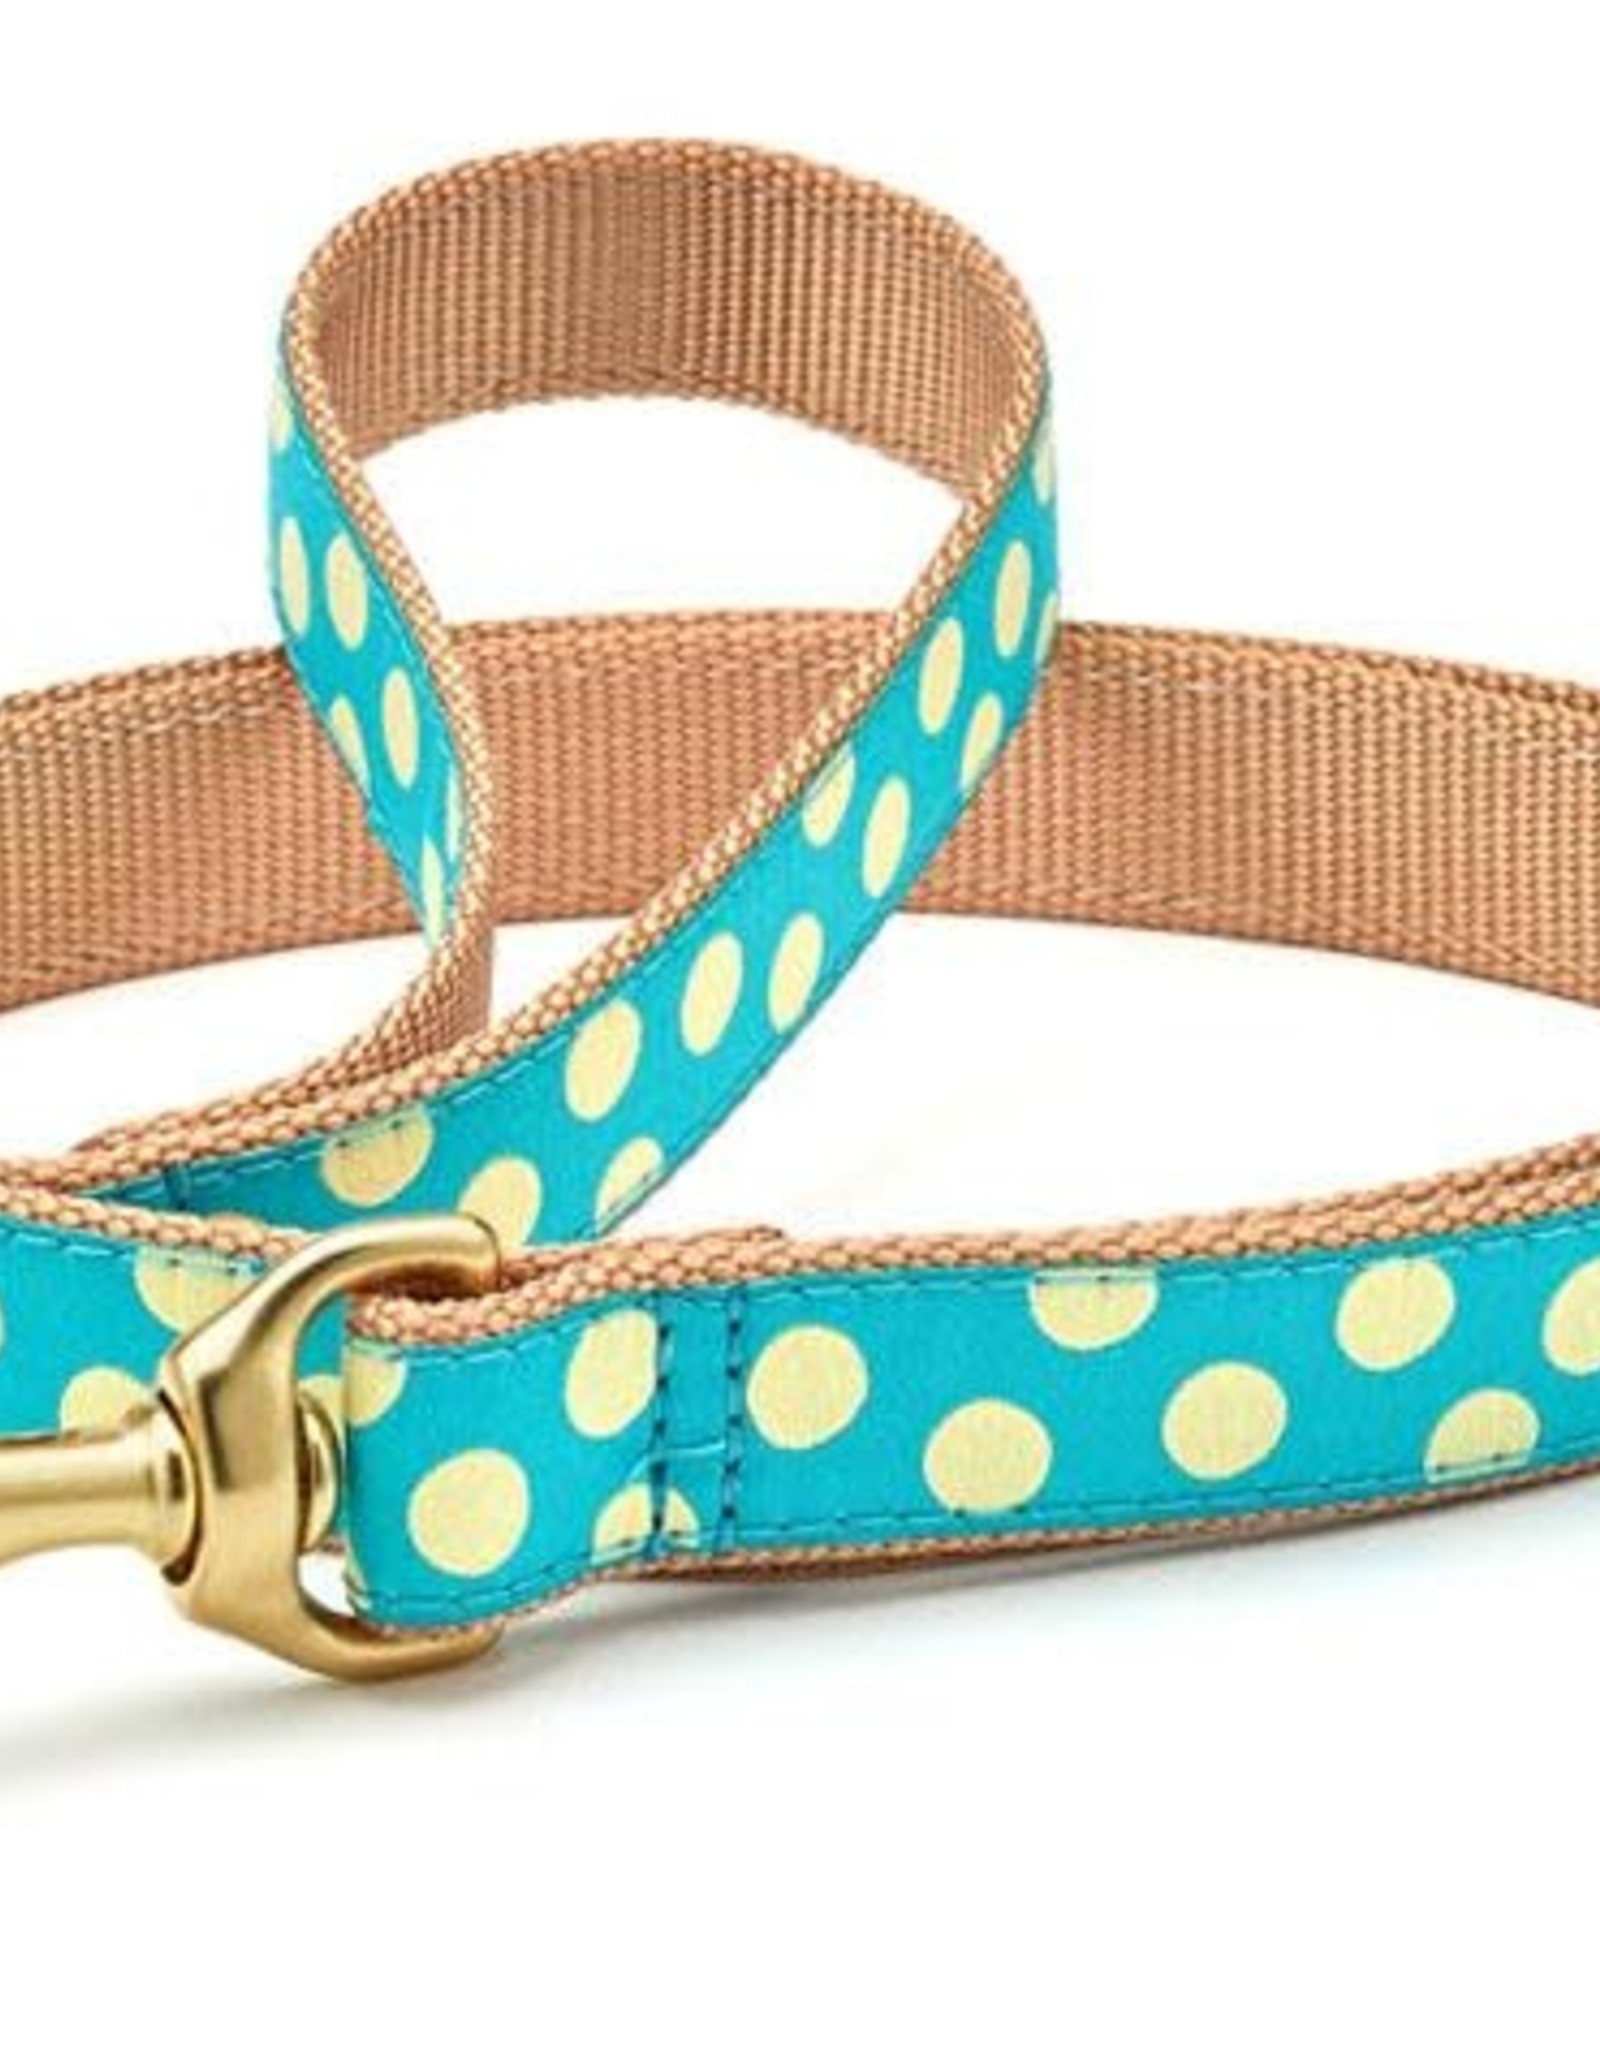 Up Country Up Country | Teal / Yellow Collars and Leashes